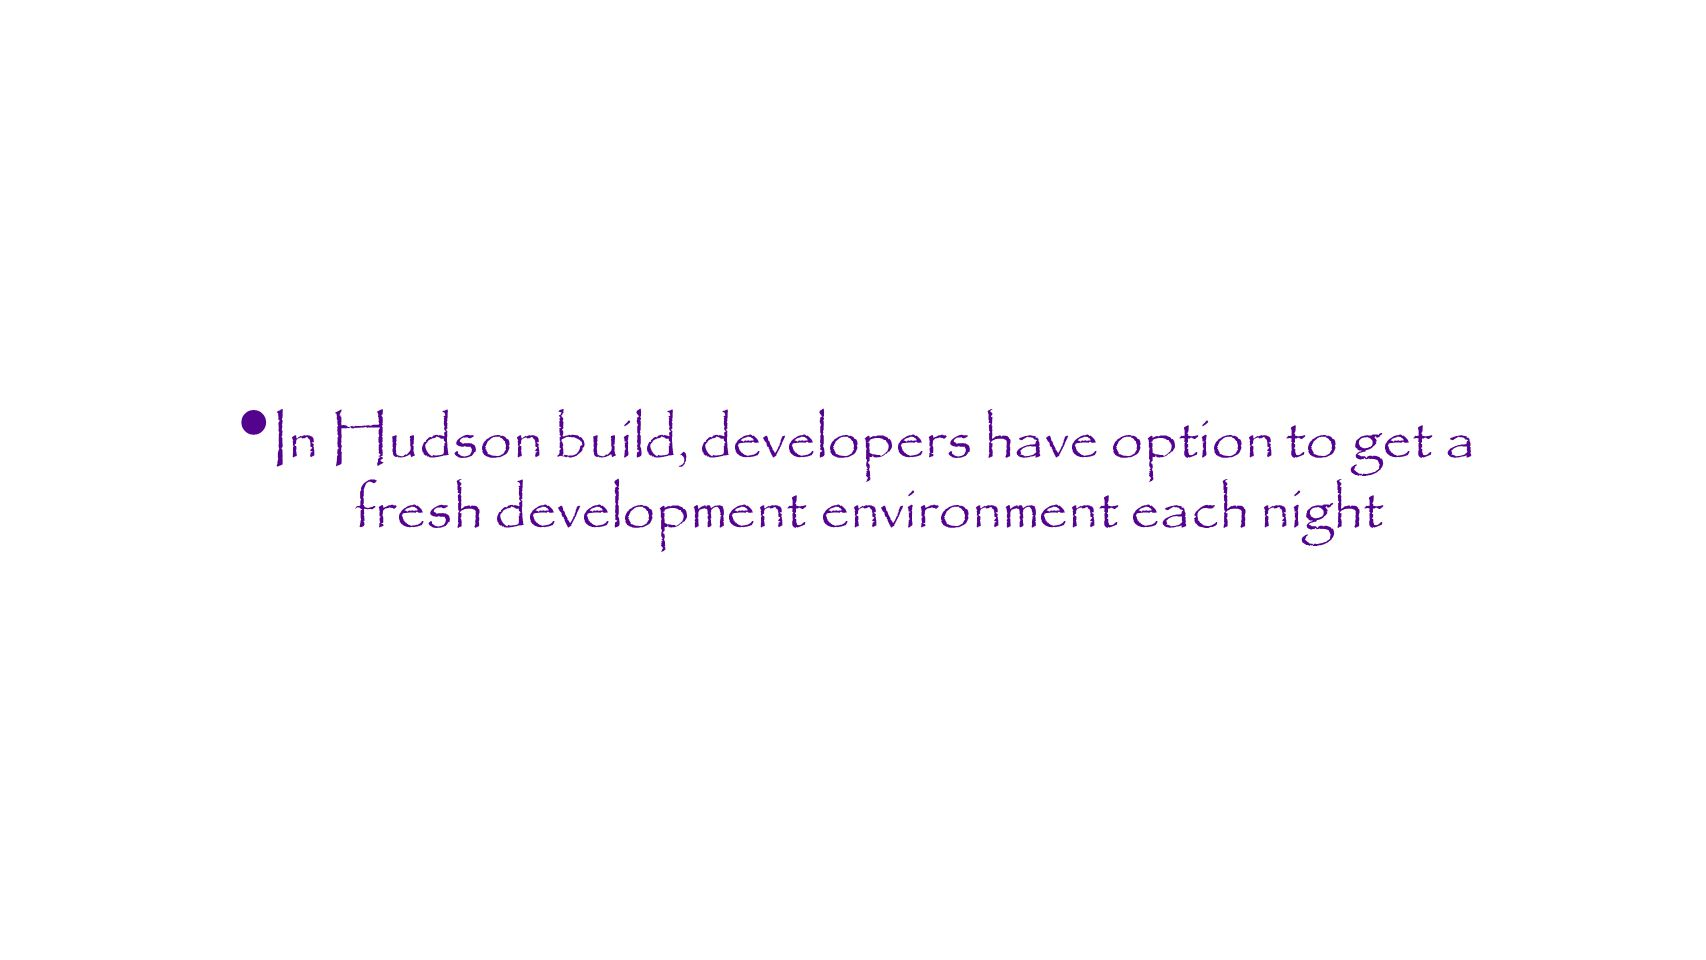 In Hudson build, developers have option to get a fresh development environment each night